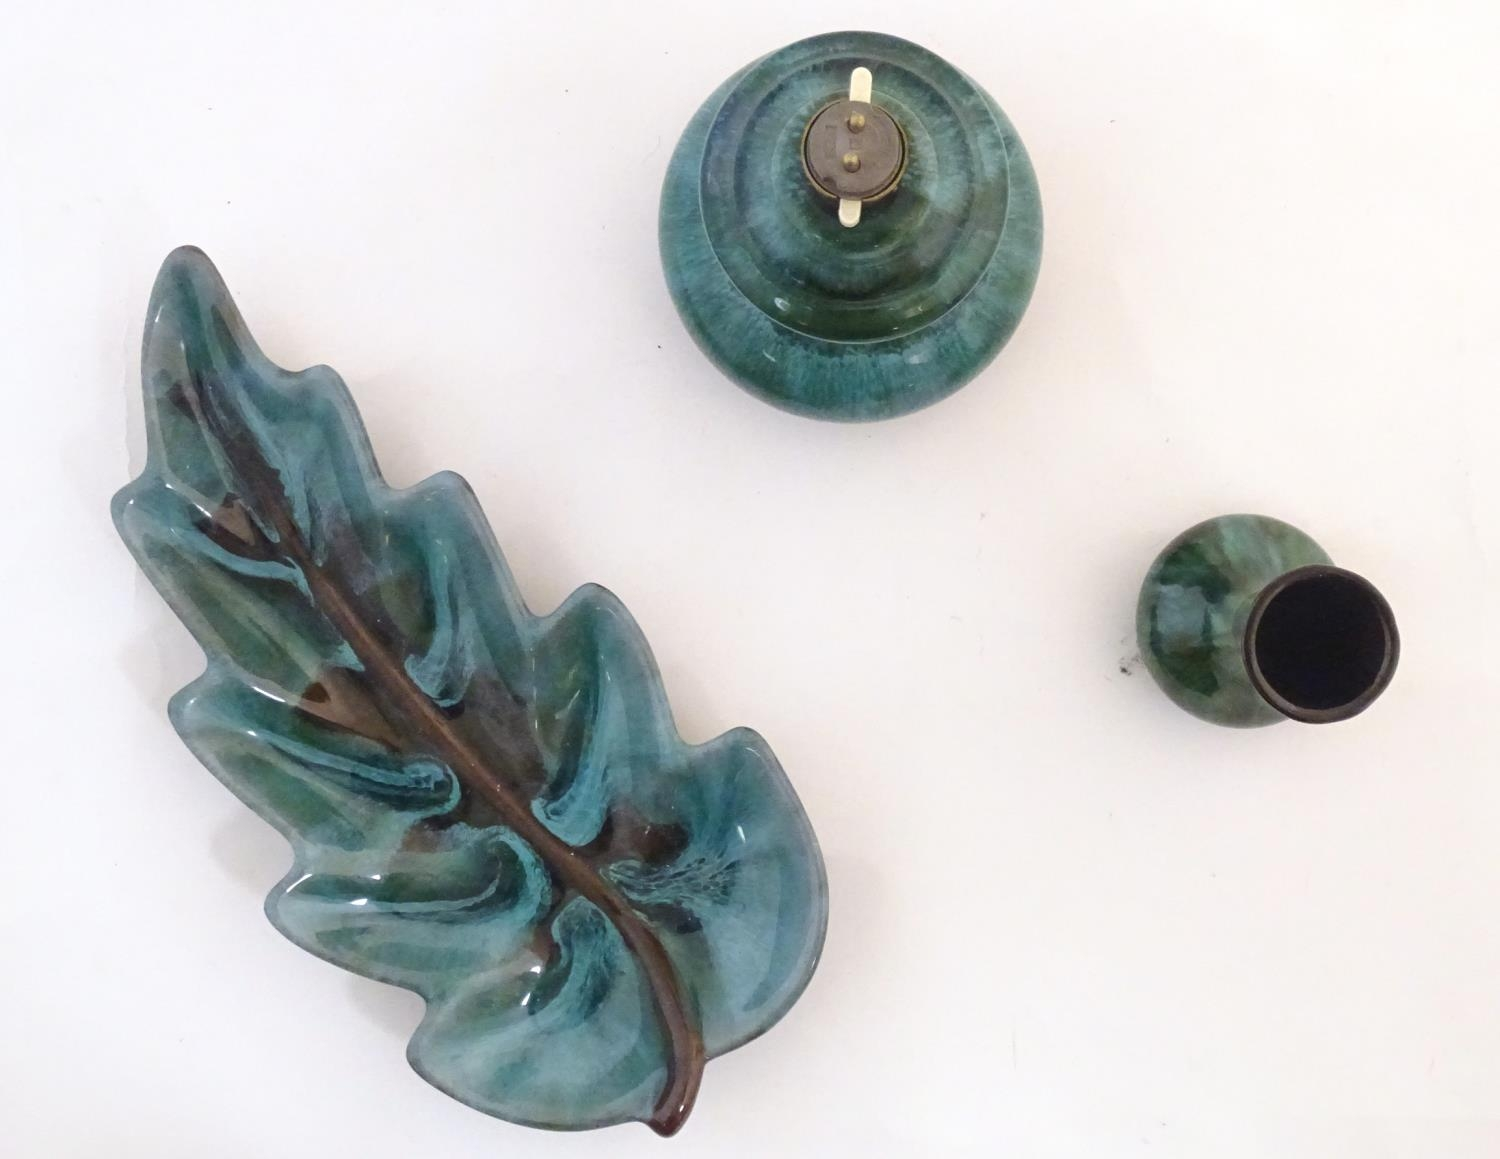 A quantity of vintage Canadian Blue Mountain Pottery wares comprising a lotus shaped bowl, a ewer, a - Image 18 of 20